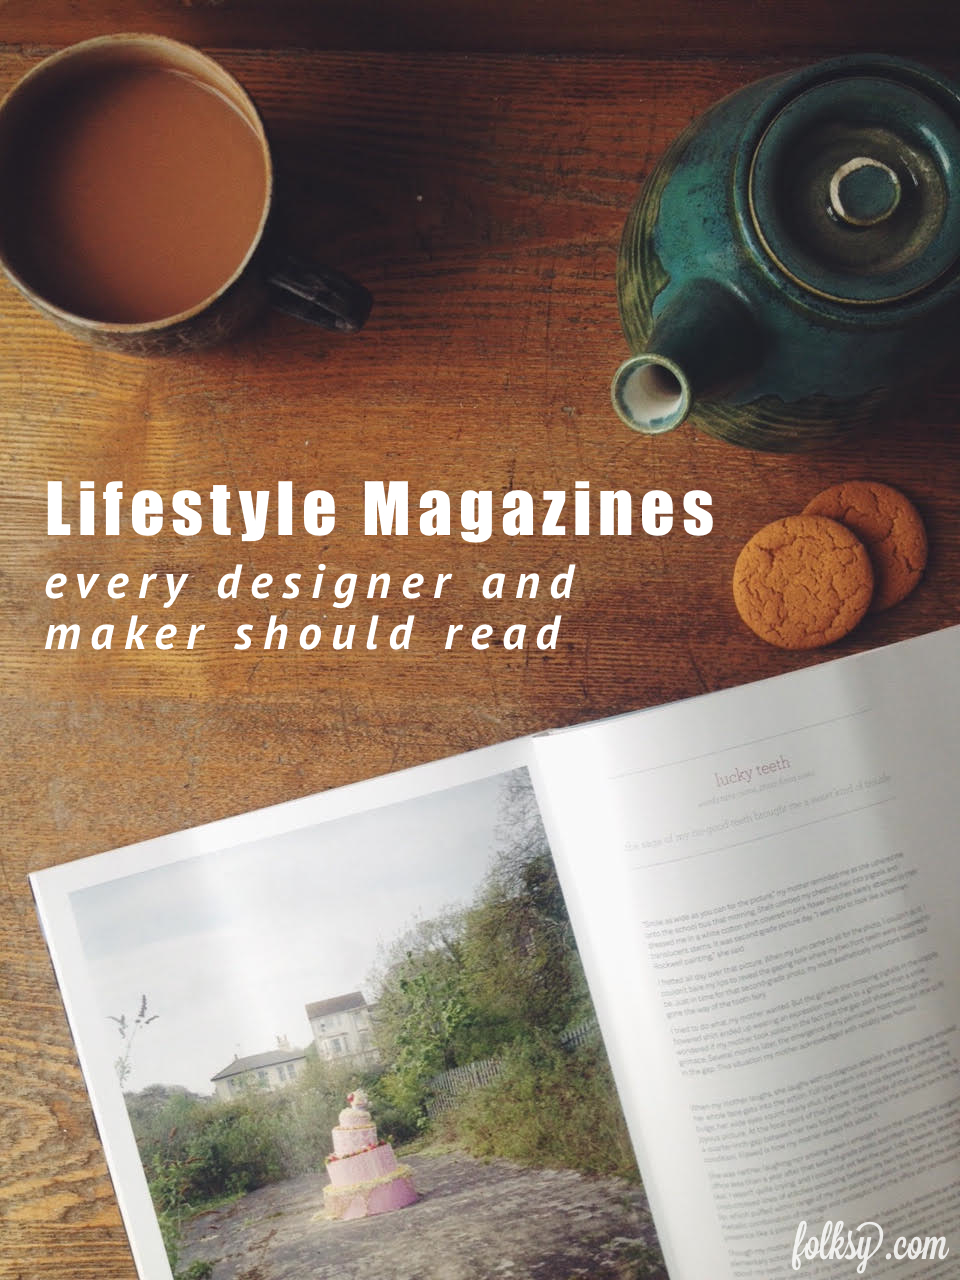 Lifestyle Magazines every designer and maker should read